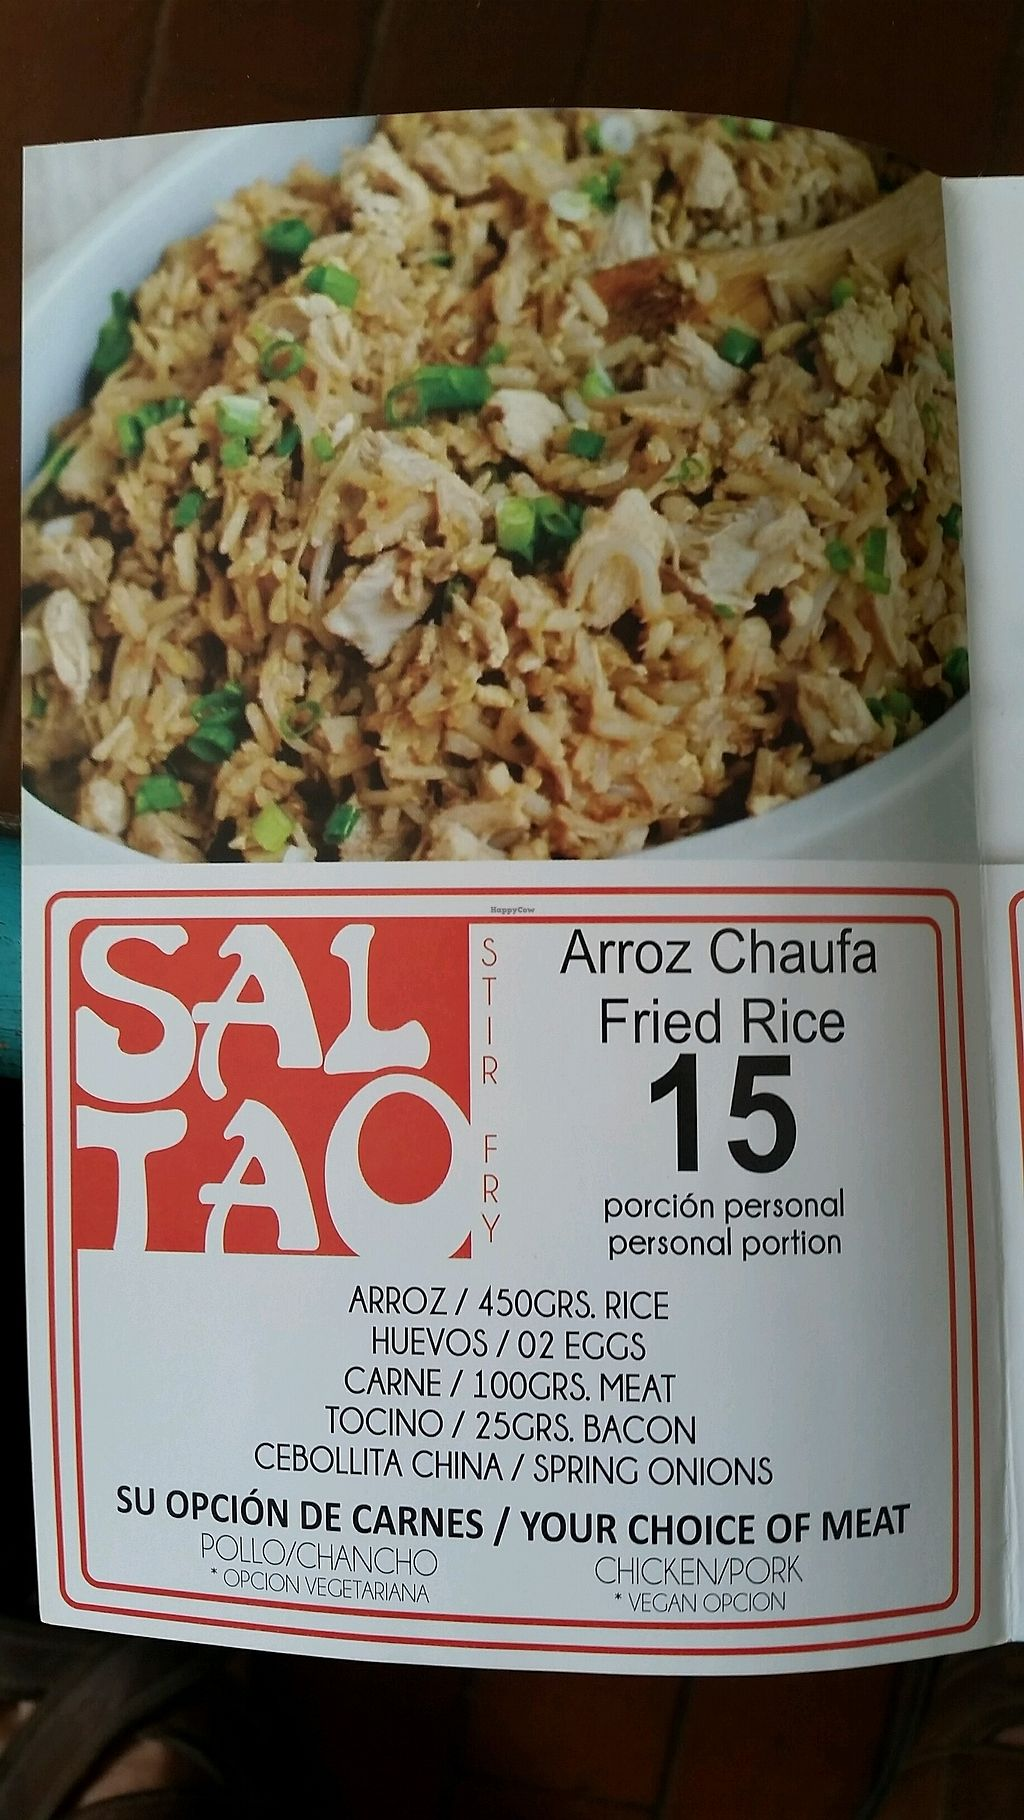 """Photo of Sal Tao Stir Fry  by <a href=""""/members/profile/DrBB"""">DrBB</a> <br/>menu 2 <br/> February 4, 2018  - <a href='/contact/abuse/image/111185/354941'>Report</a>"""